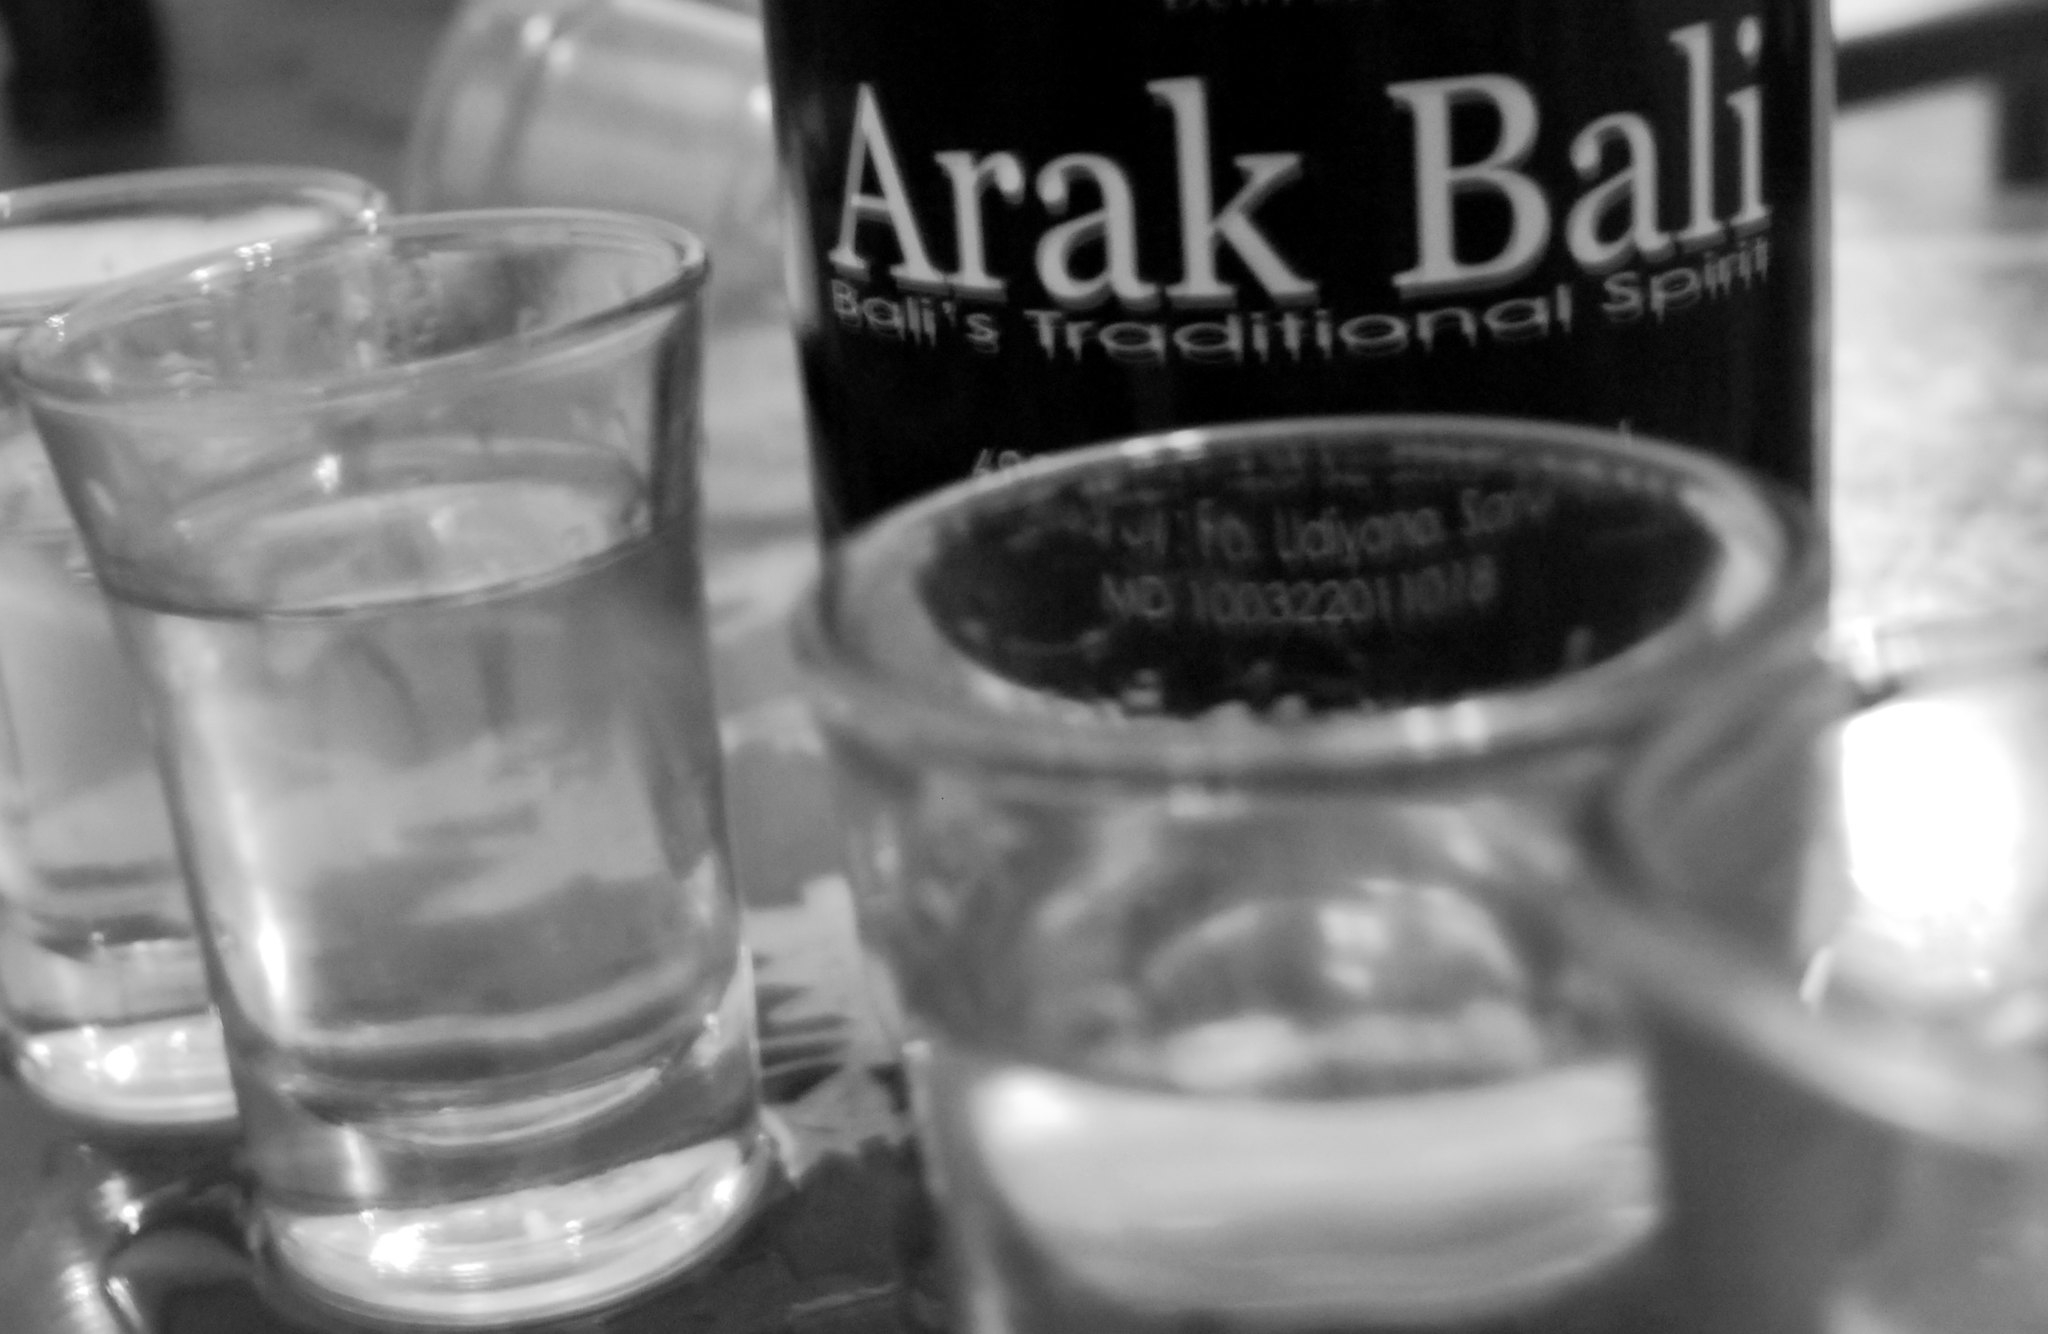 popular alcoholic beverages in Bali